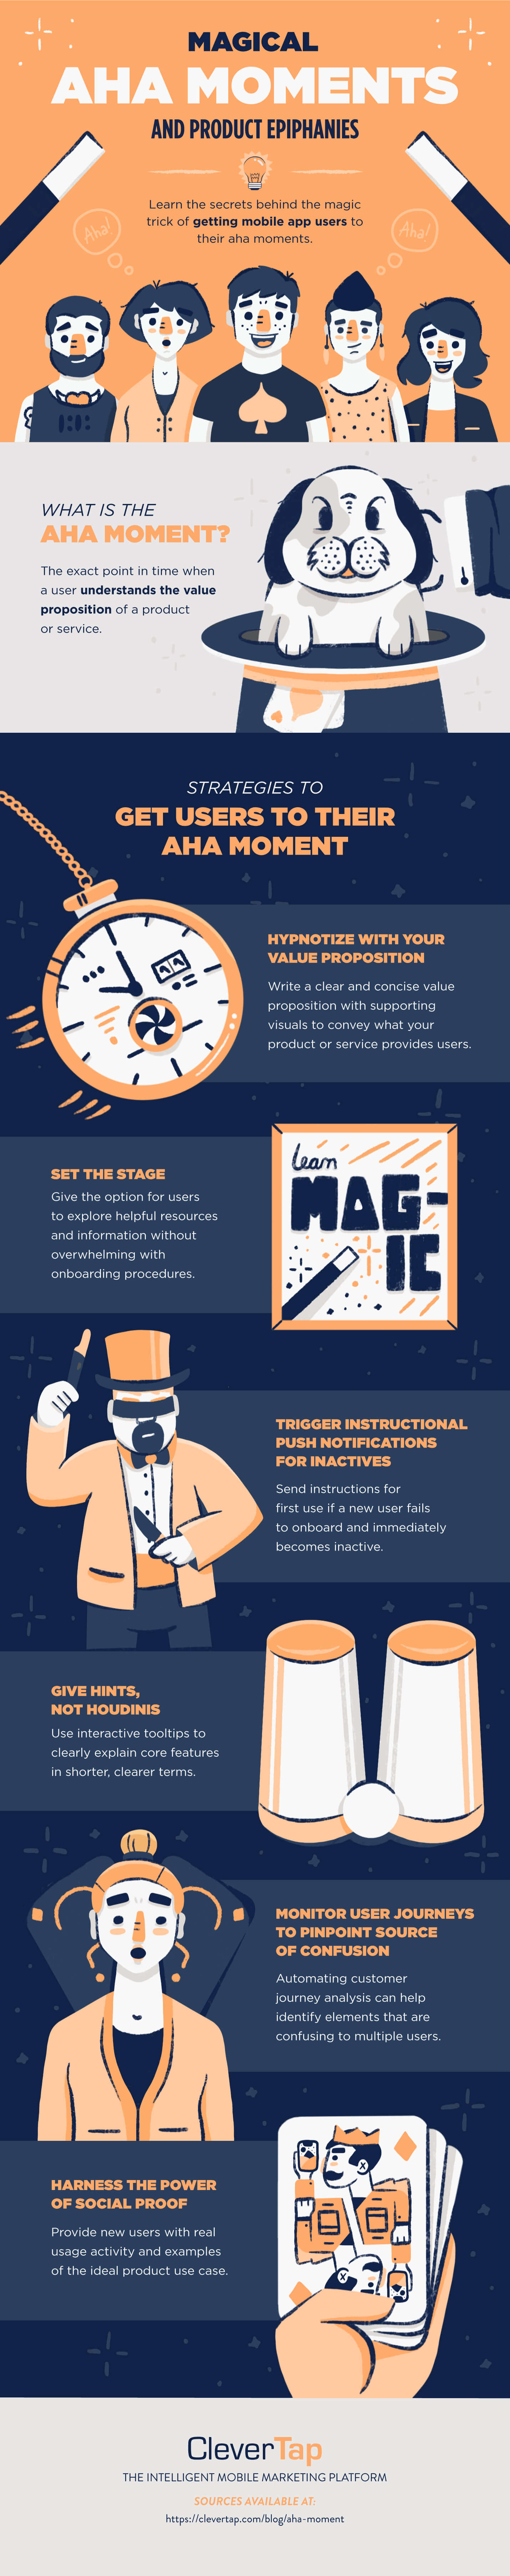 aha moment infographic tips featuring magician theme with hypnotizing stopwatch, blindfolded magician throwing knives, card trick, and group of customers experiencing their eureka aha moment